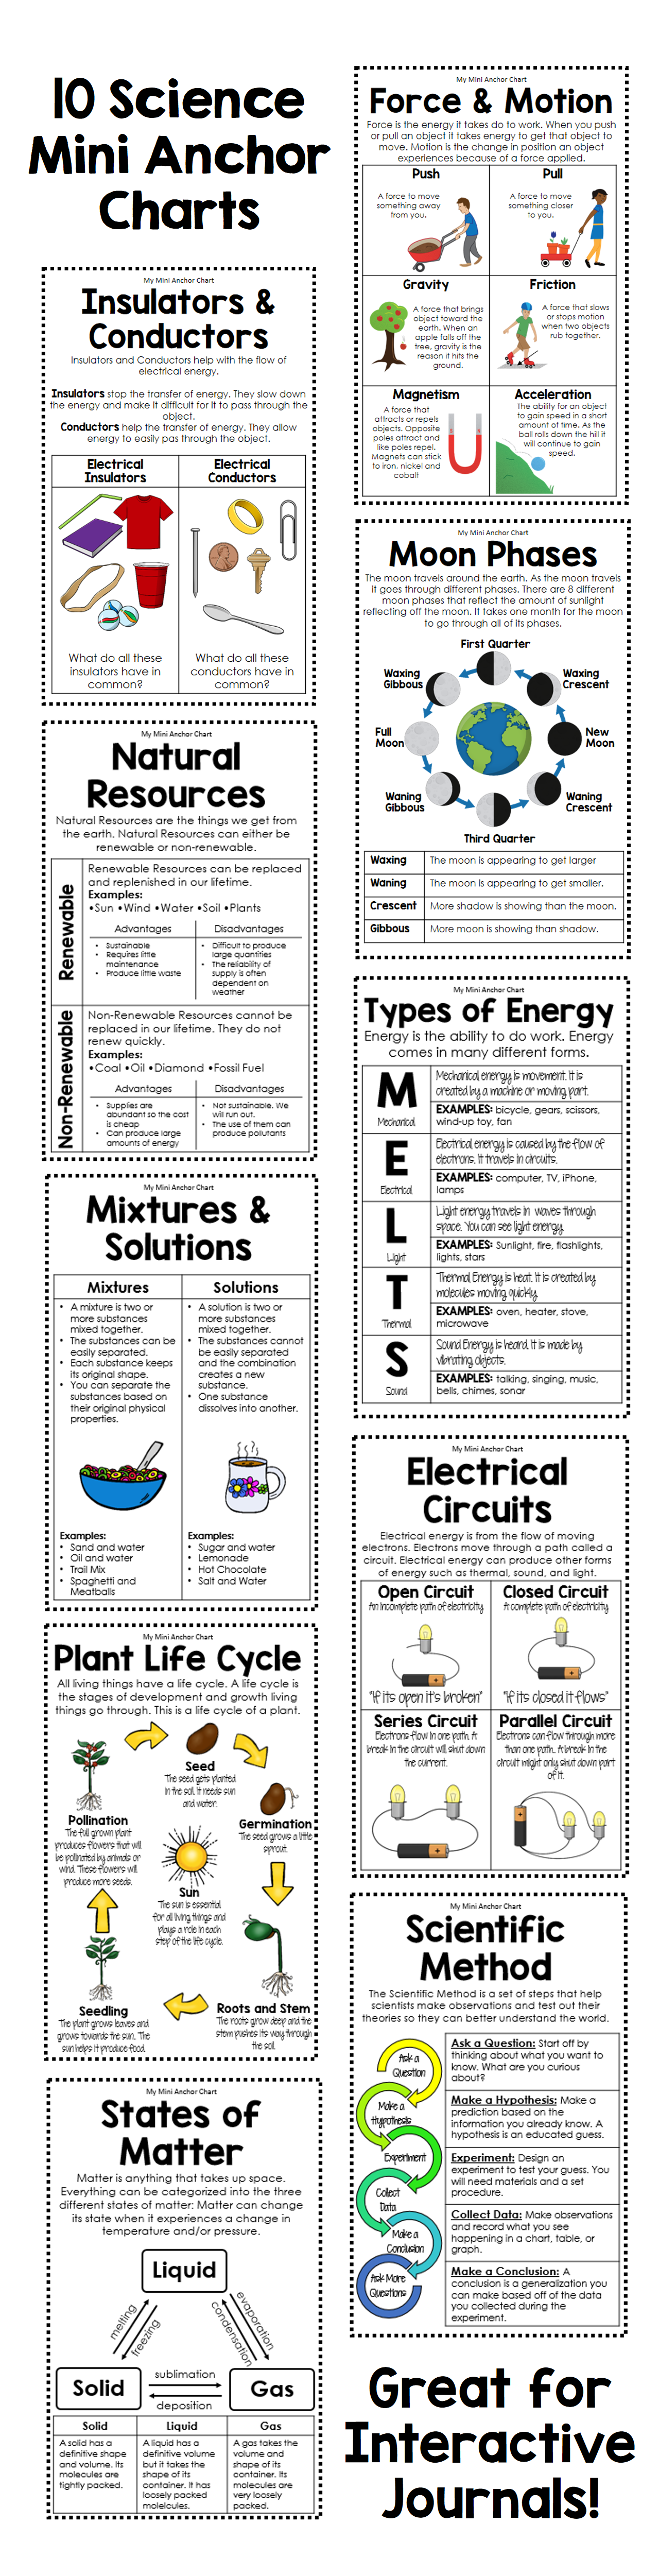 Science Posters And Anchor Charts